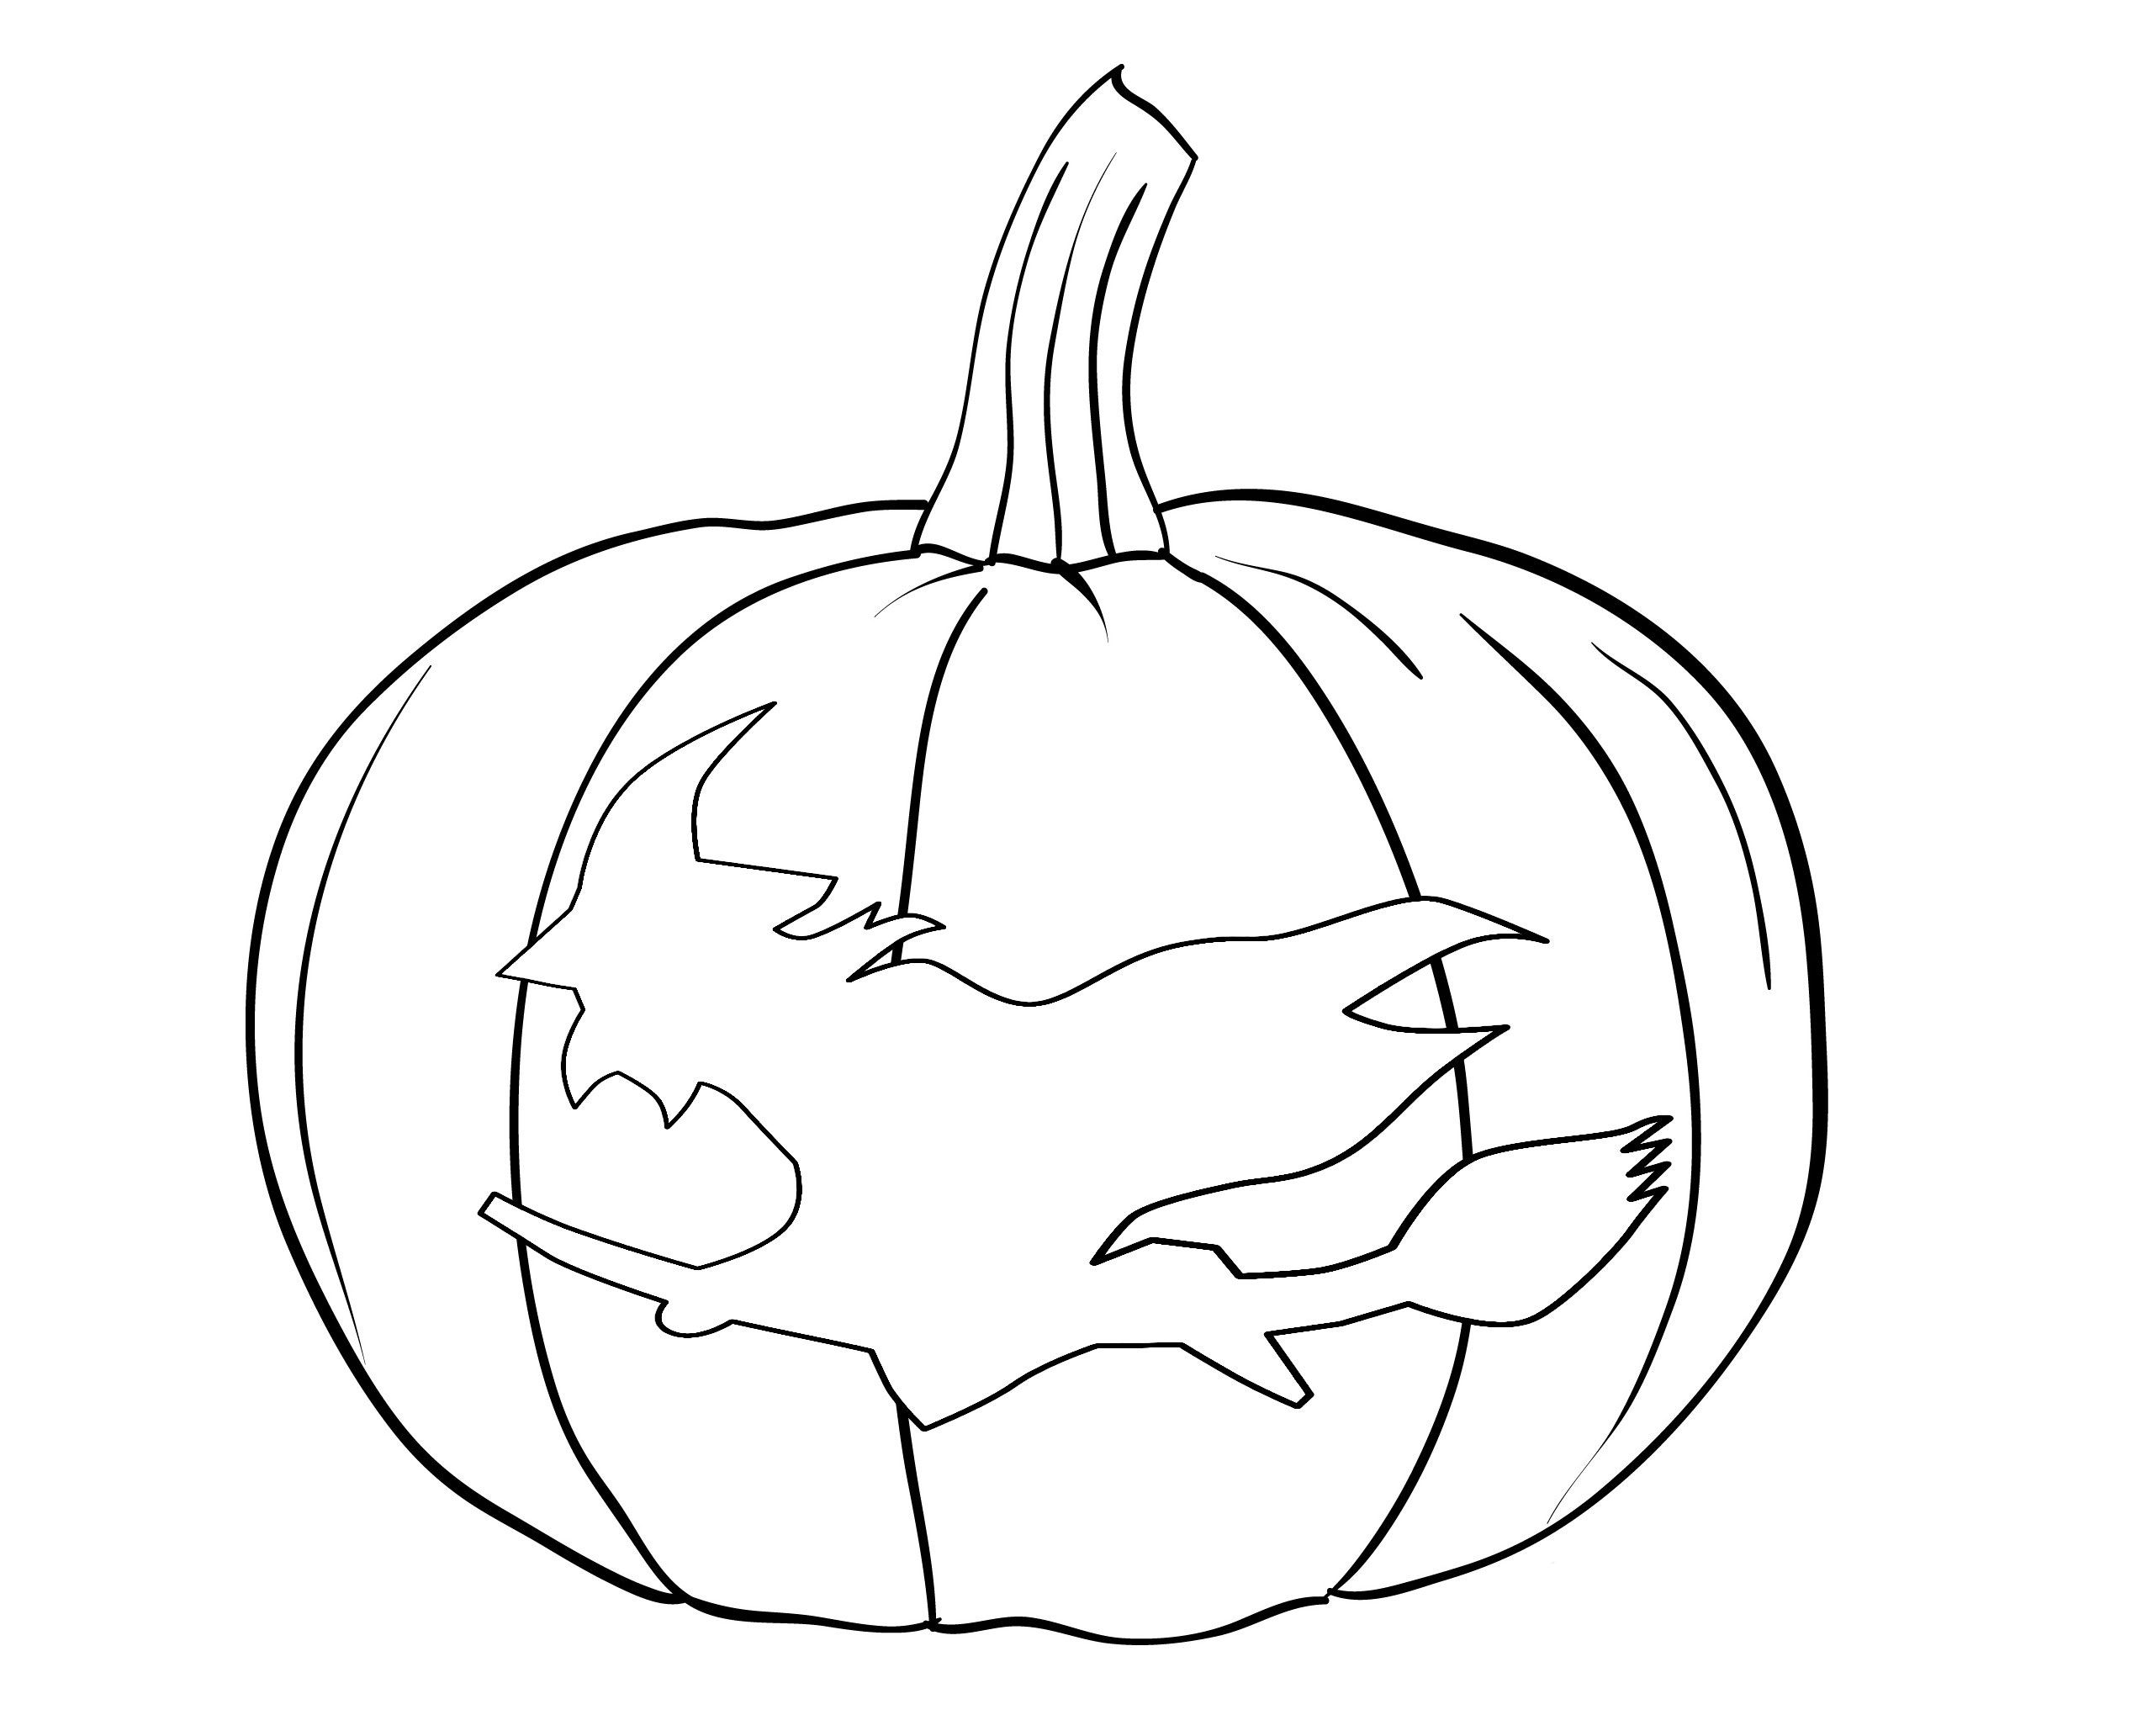 pumpkin pictures pumpkin carving templates galore for your best jack o pictures pumpkin